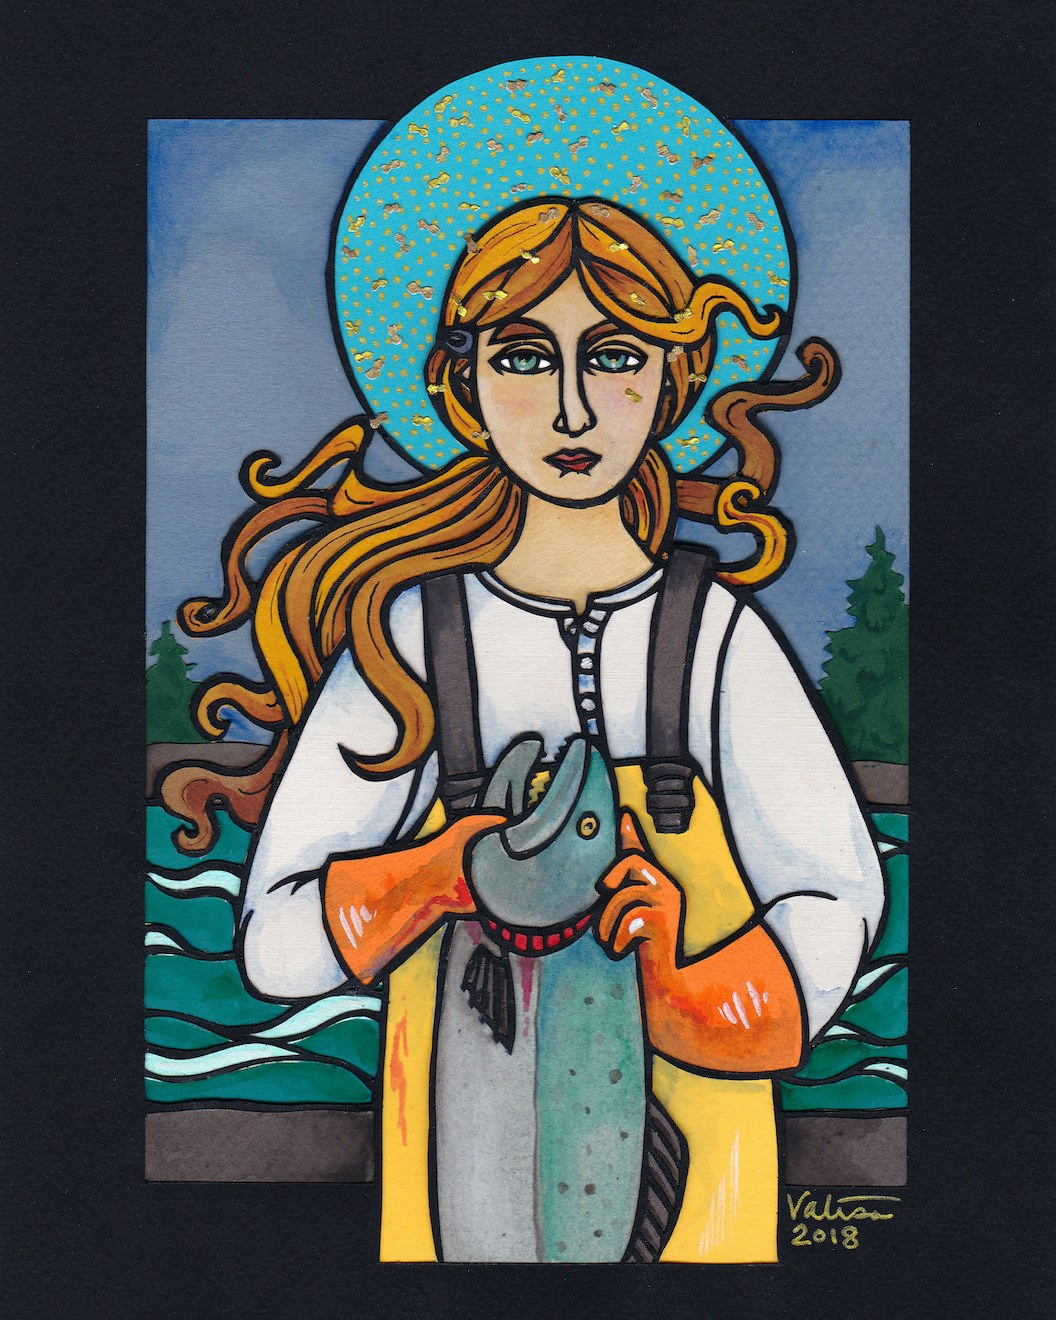 Artwork of a woman in fishing bib and gloves holds salmon by the gills and stands under a full moon